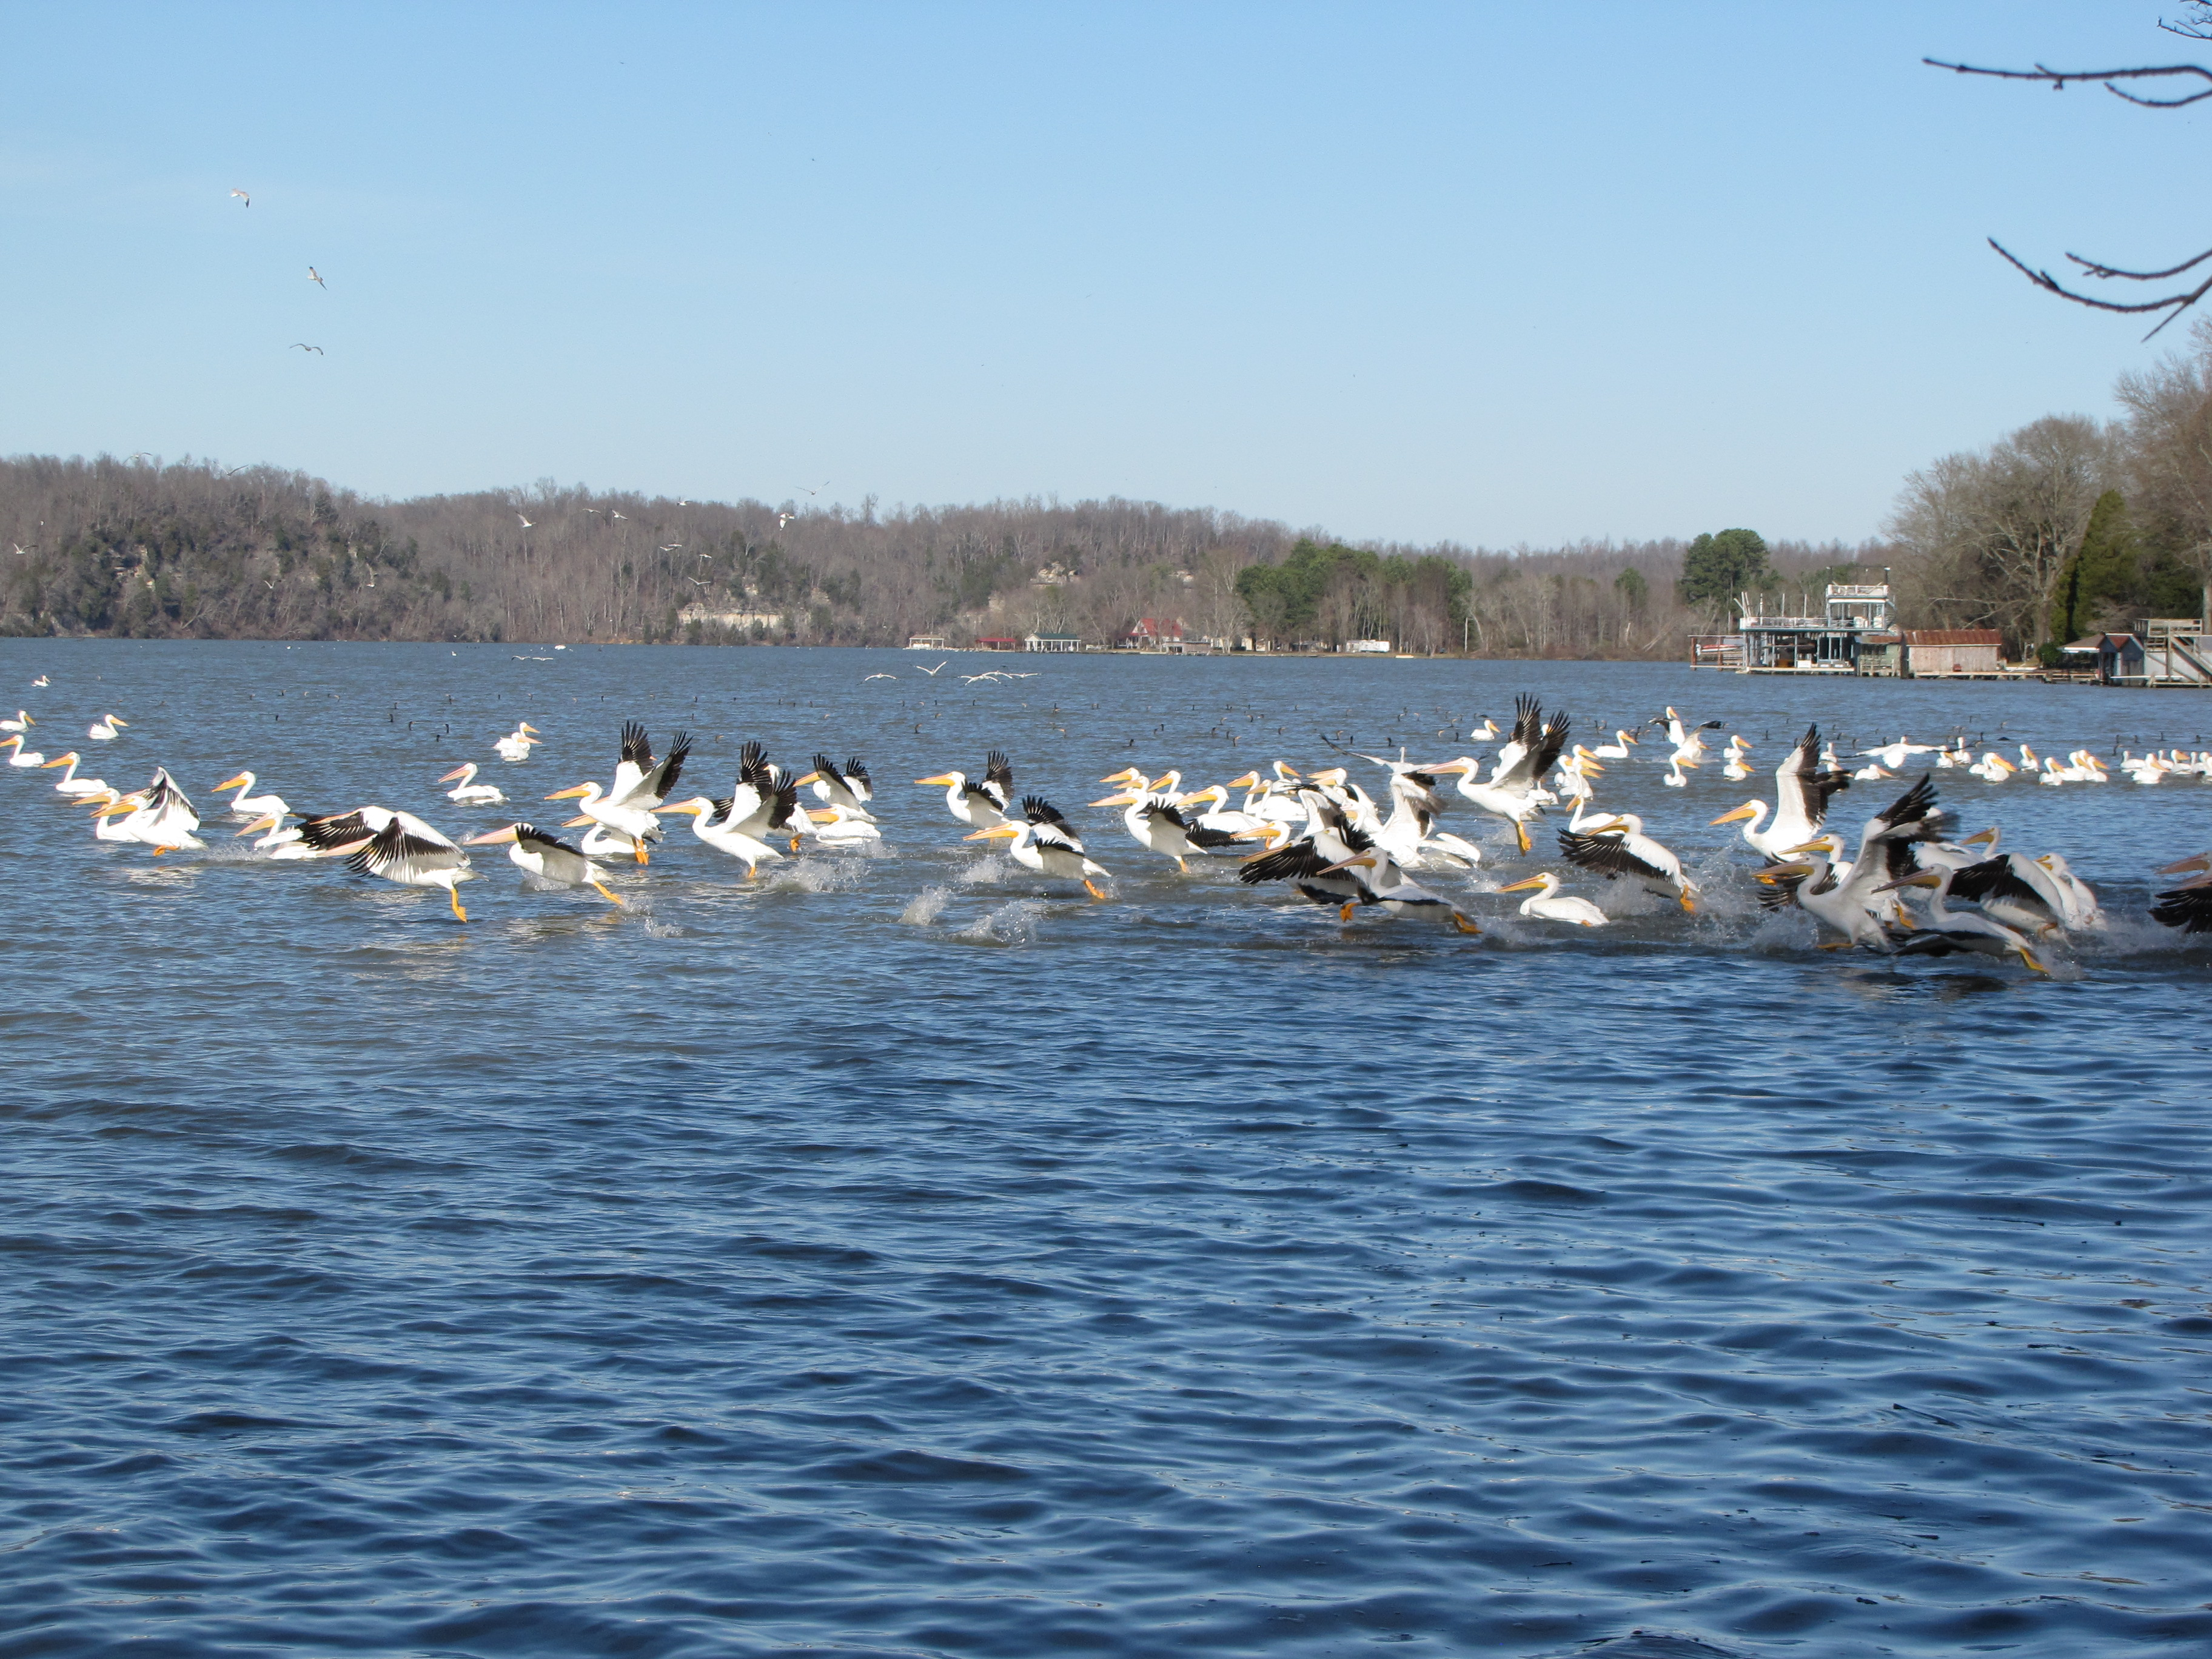 American White Pelicans started spending their winters on the Elk River, near Rogersville, Alabam...